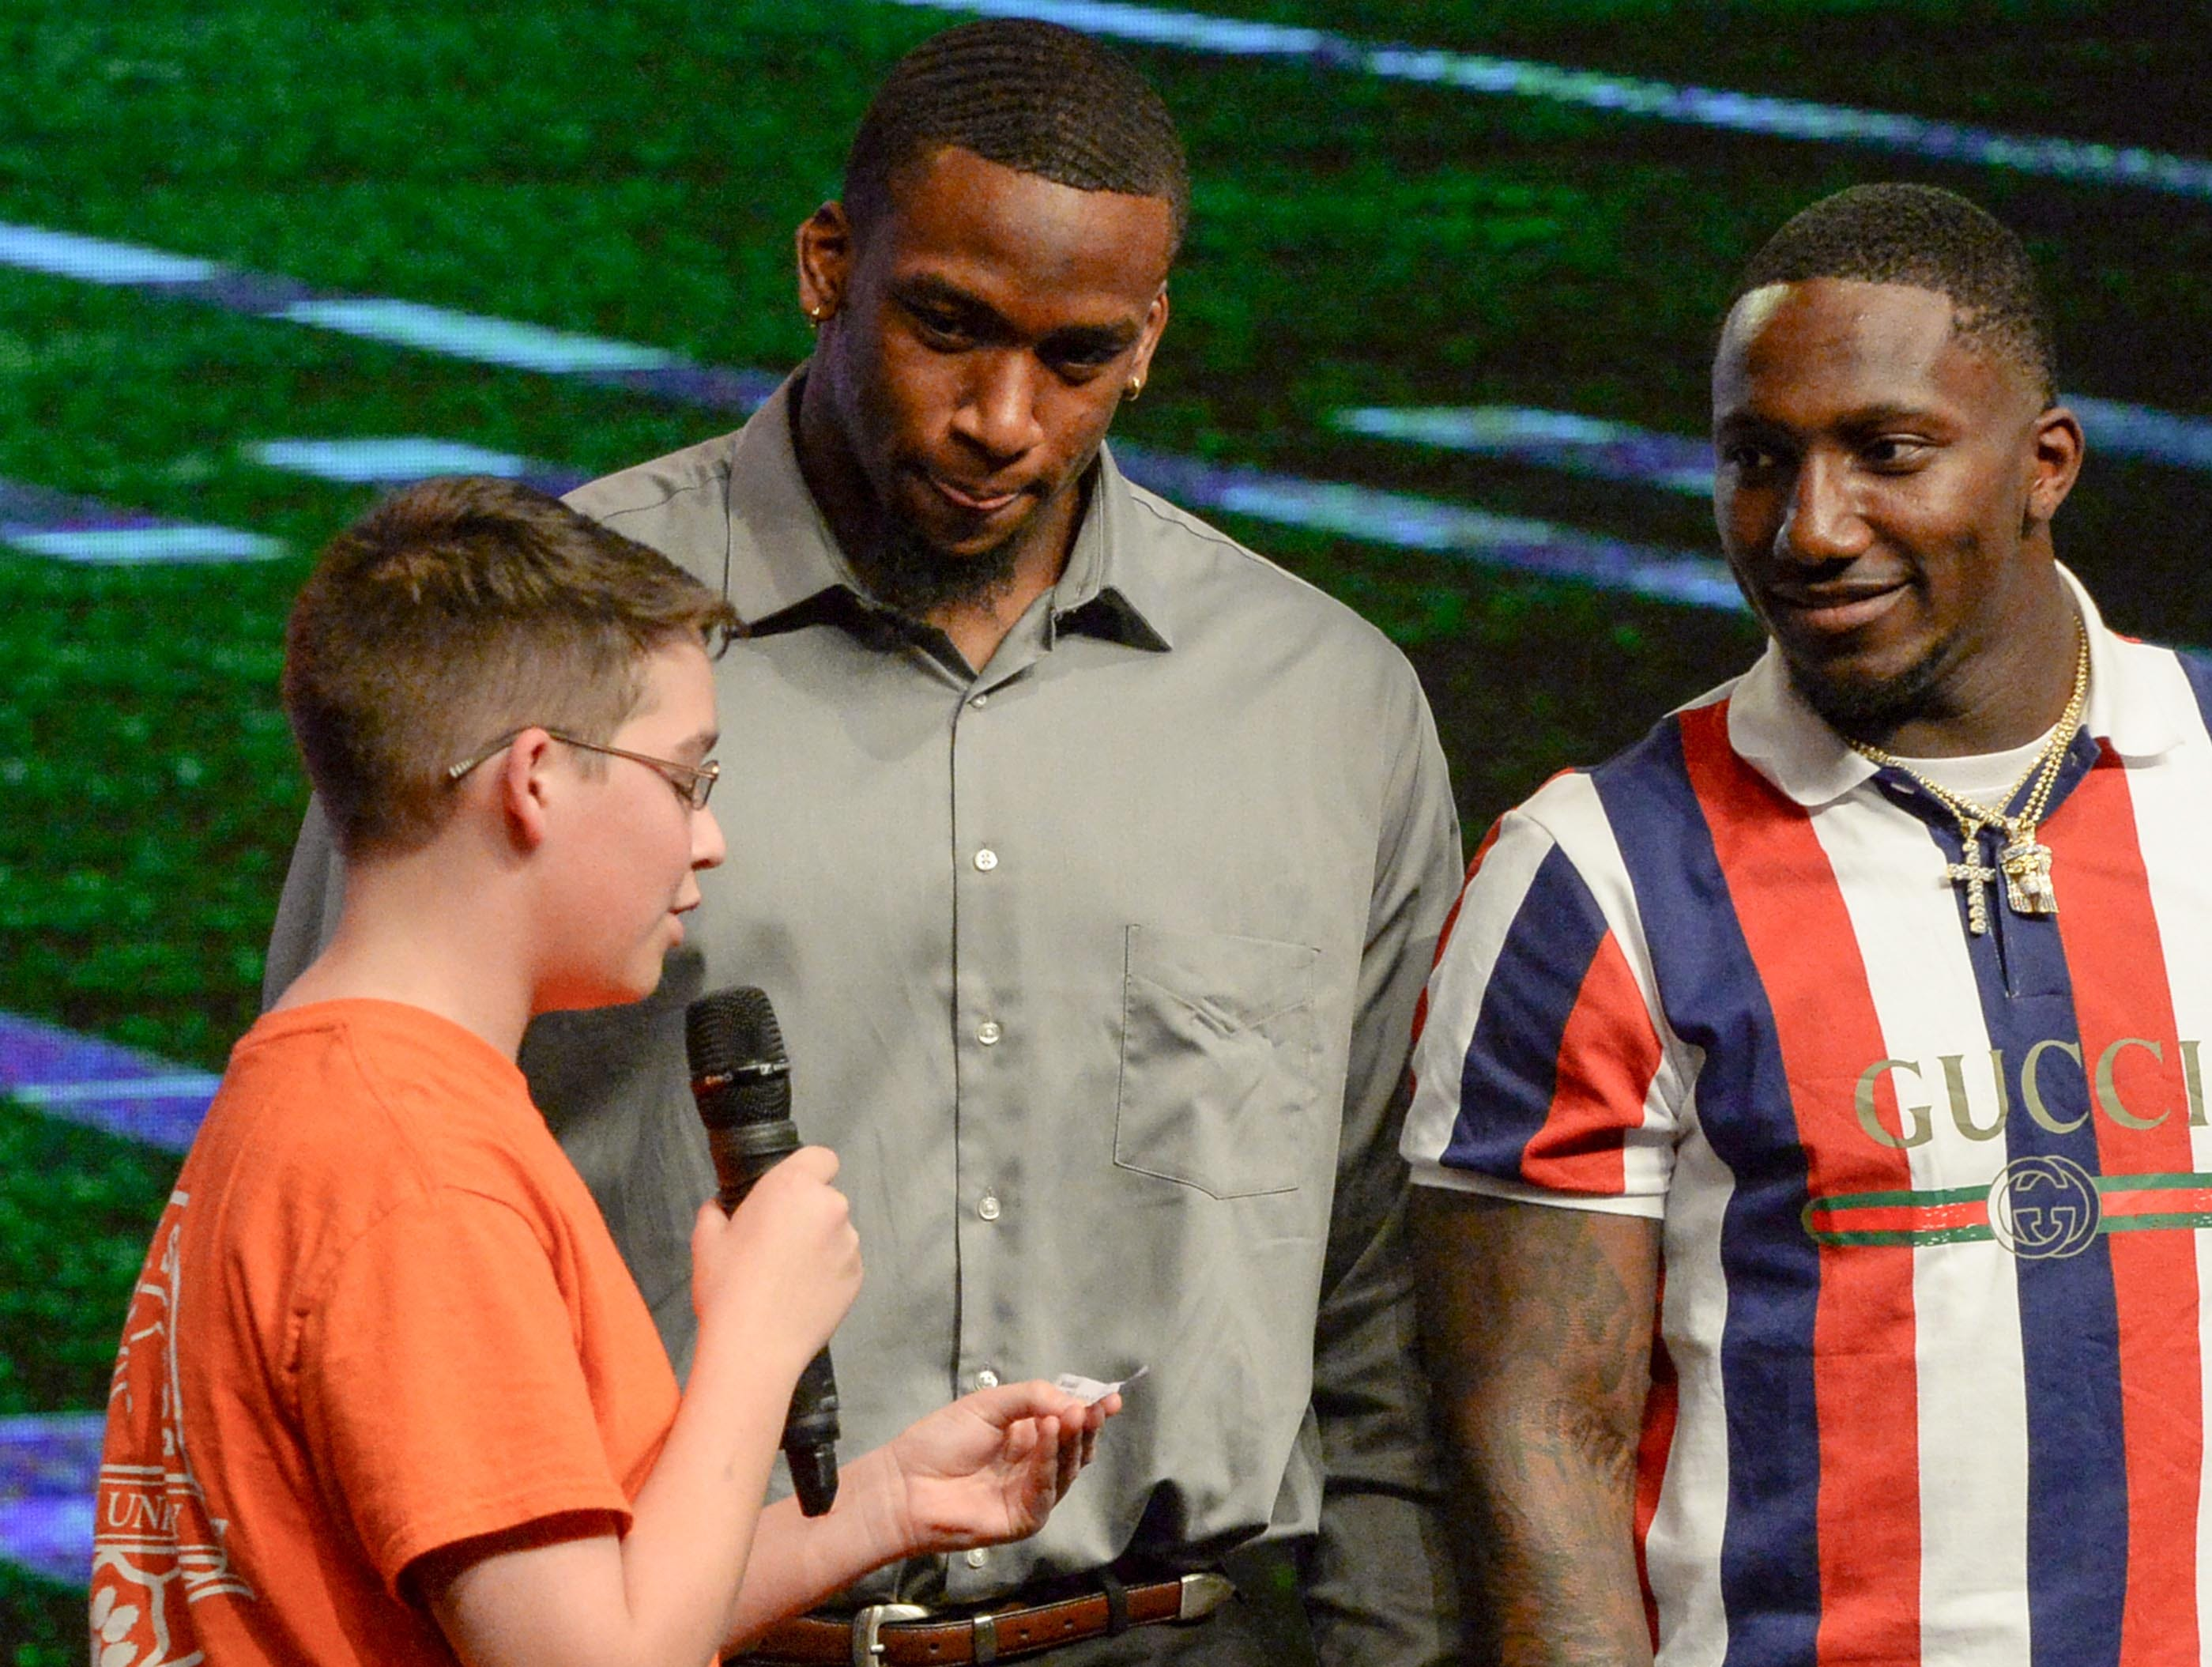 Former Clemson Tiger Clelin Ferrell, left, and Deebo Samuel, right, South Carolina Gamecock football player, listen to Franklin Ruby, an eighth grade student from Riverside Middle School in Pendleton ask a question about their most influential person in their lives during the Coaches 4 Character event at Relentless Church in Greenville Tuesday.